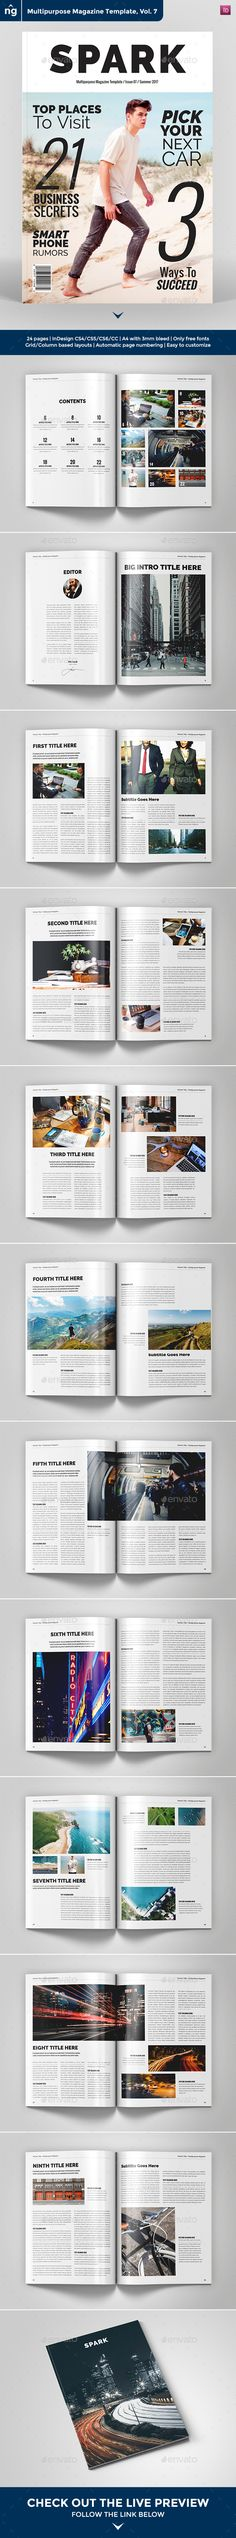 Multipurpose Magazine Template by northgraphics Live Preview Here on ISSUU This is a Professional InDesign Multipurpose Magazine Template. With 24 pages and all parts can be eas